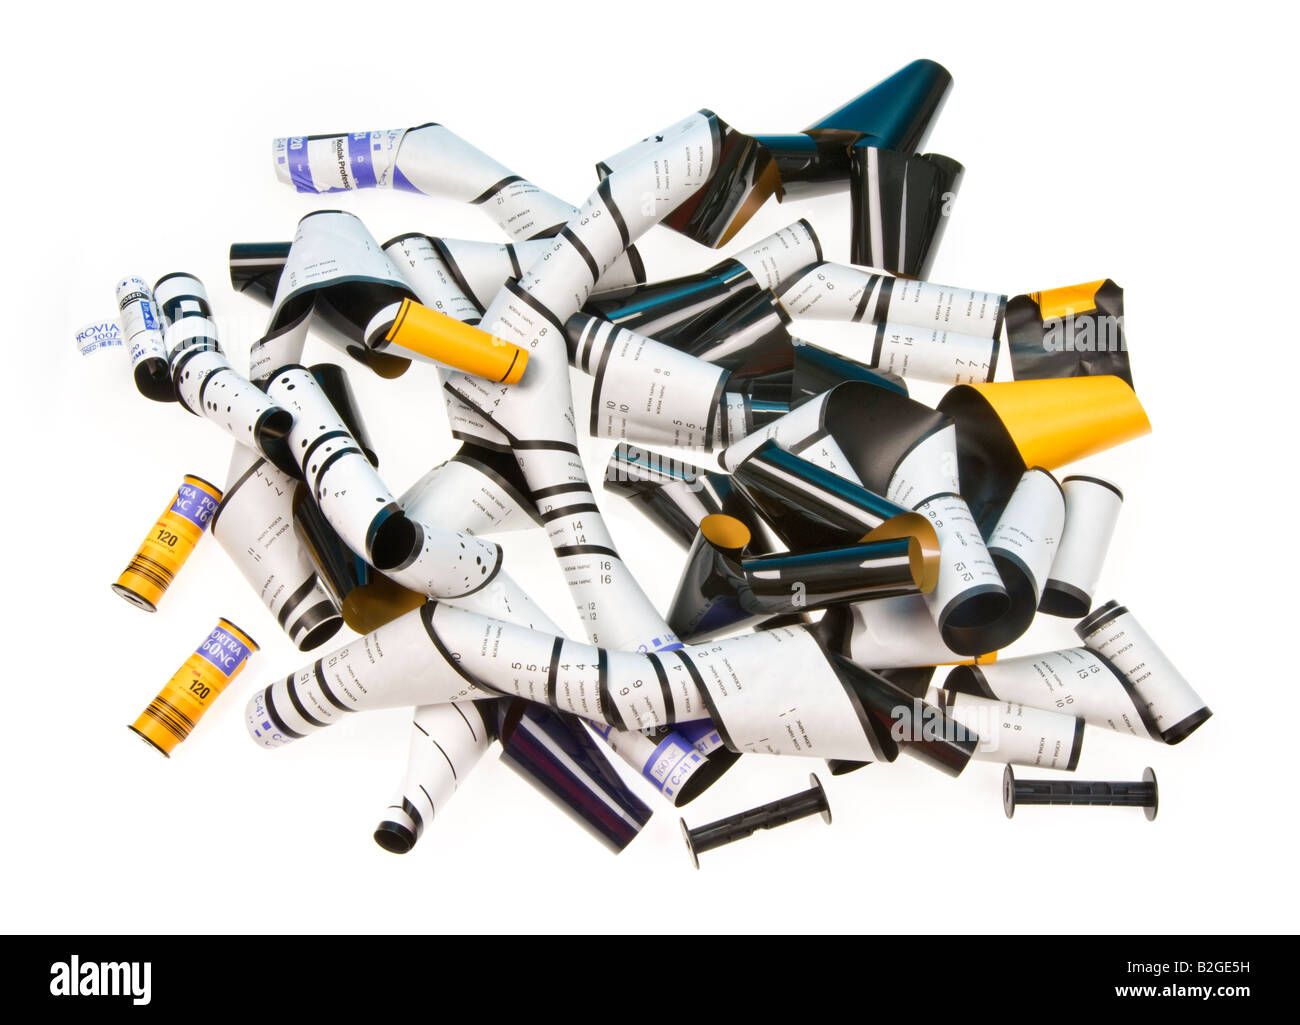 time for film (material, analog) is over - Opened rolls of 120 medium format films  yellow white black - Stock Image